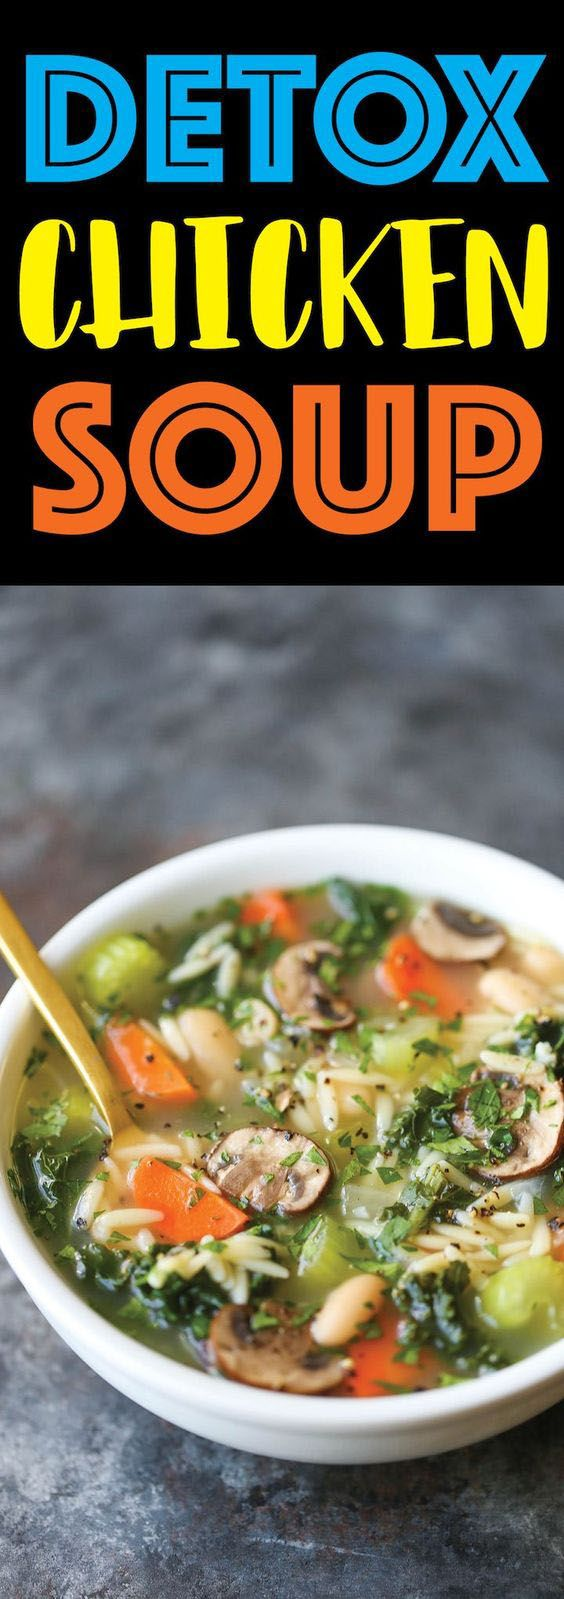 Detox Chicken Soup Recipe. Healthy, quick and easy to make!